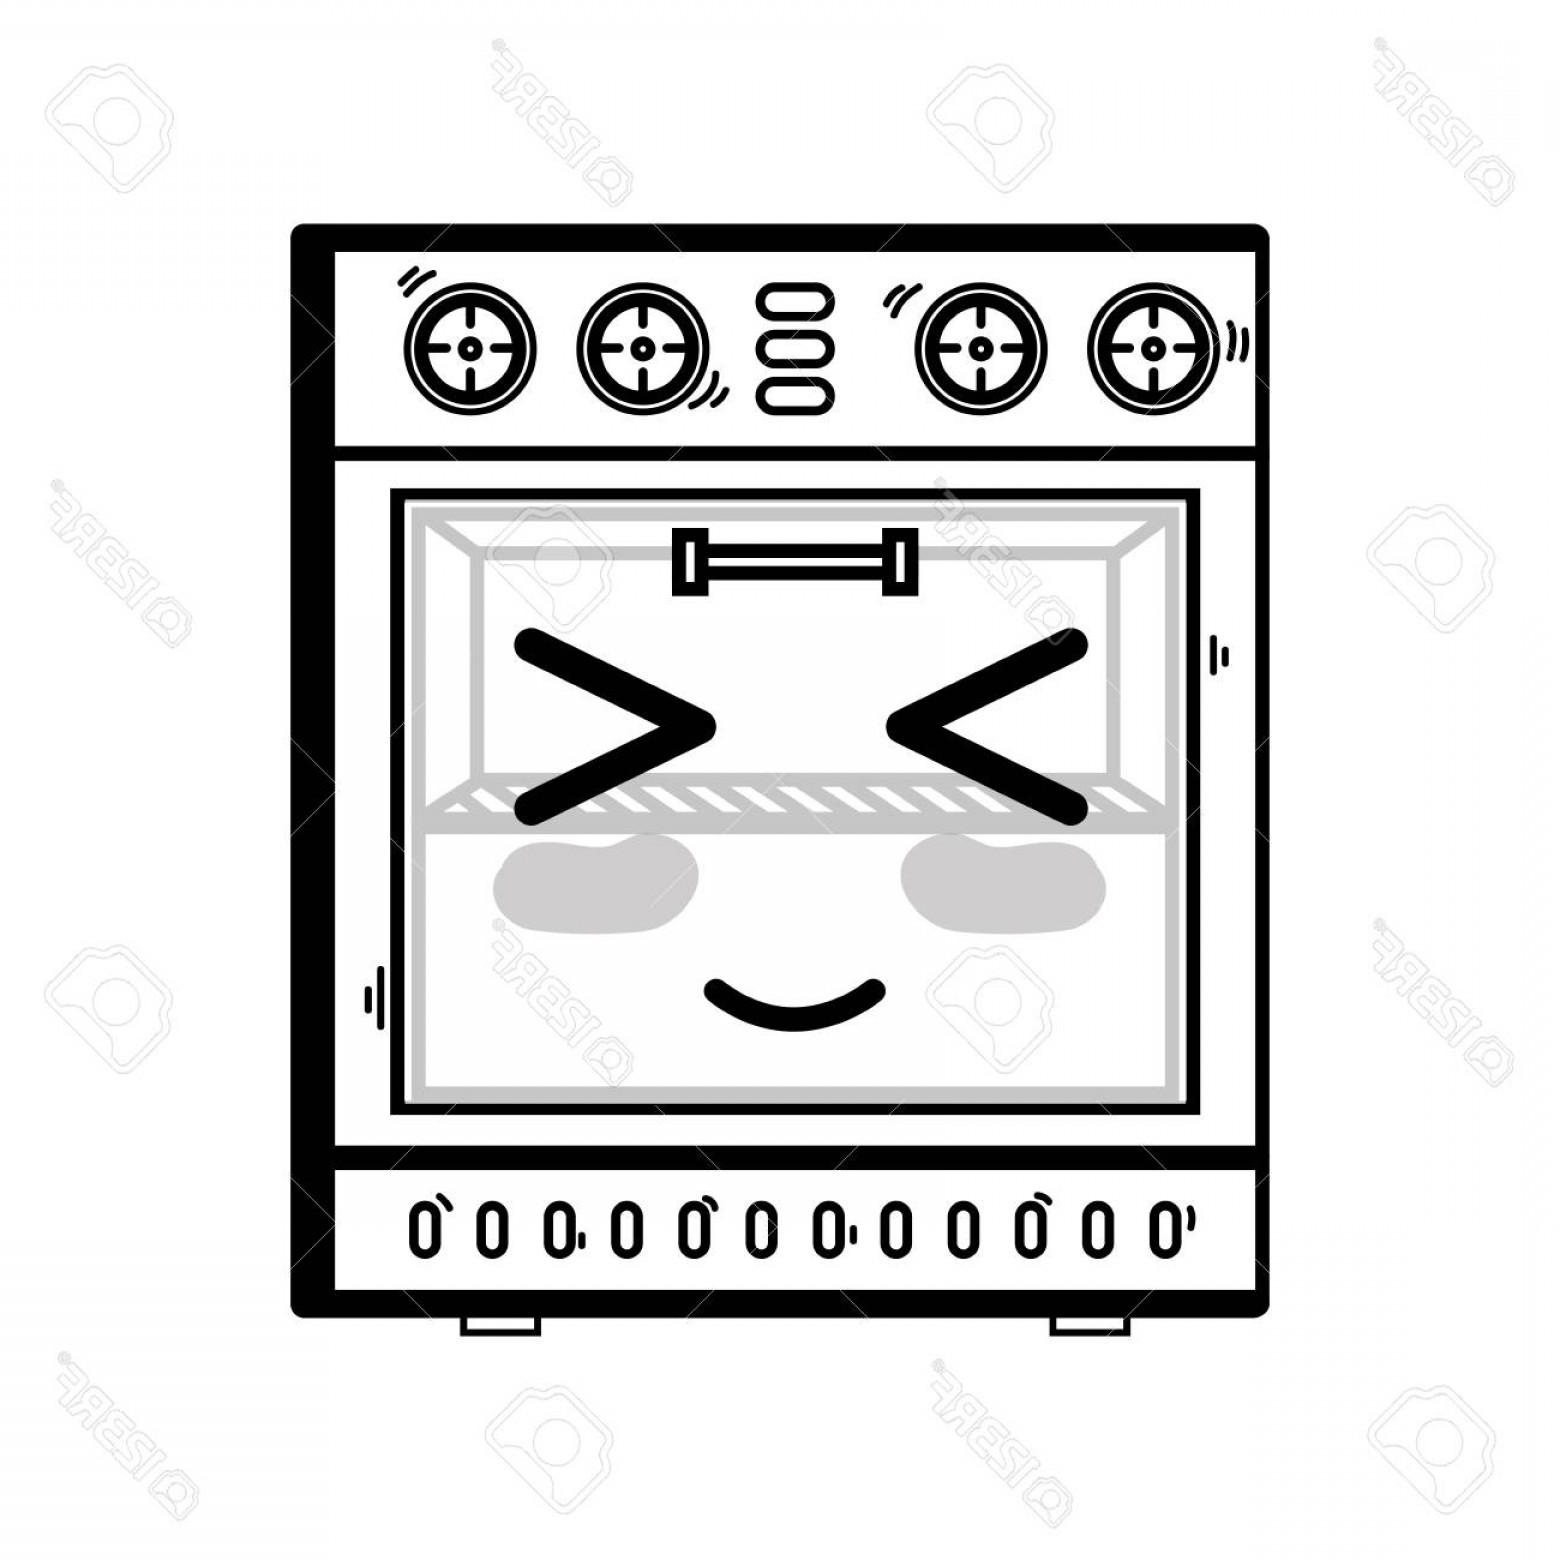 Happy Oven Vector: Photoline Cute Happy Oven Technology Vector Illustration